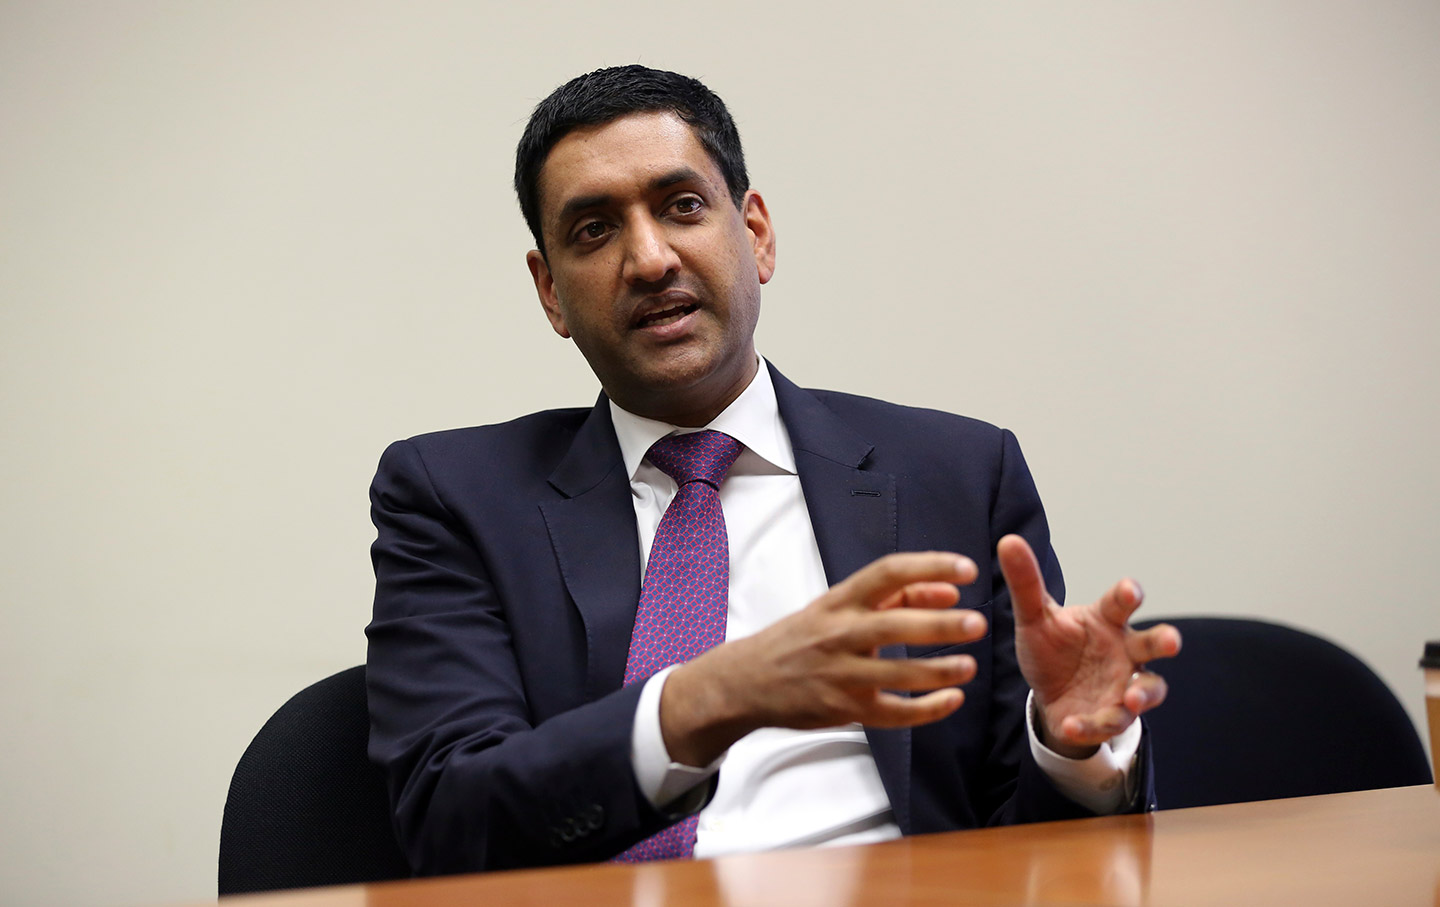 Ro Khanna during an interview